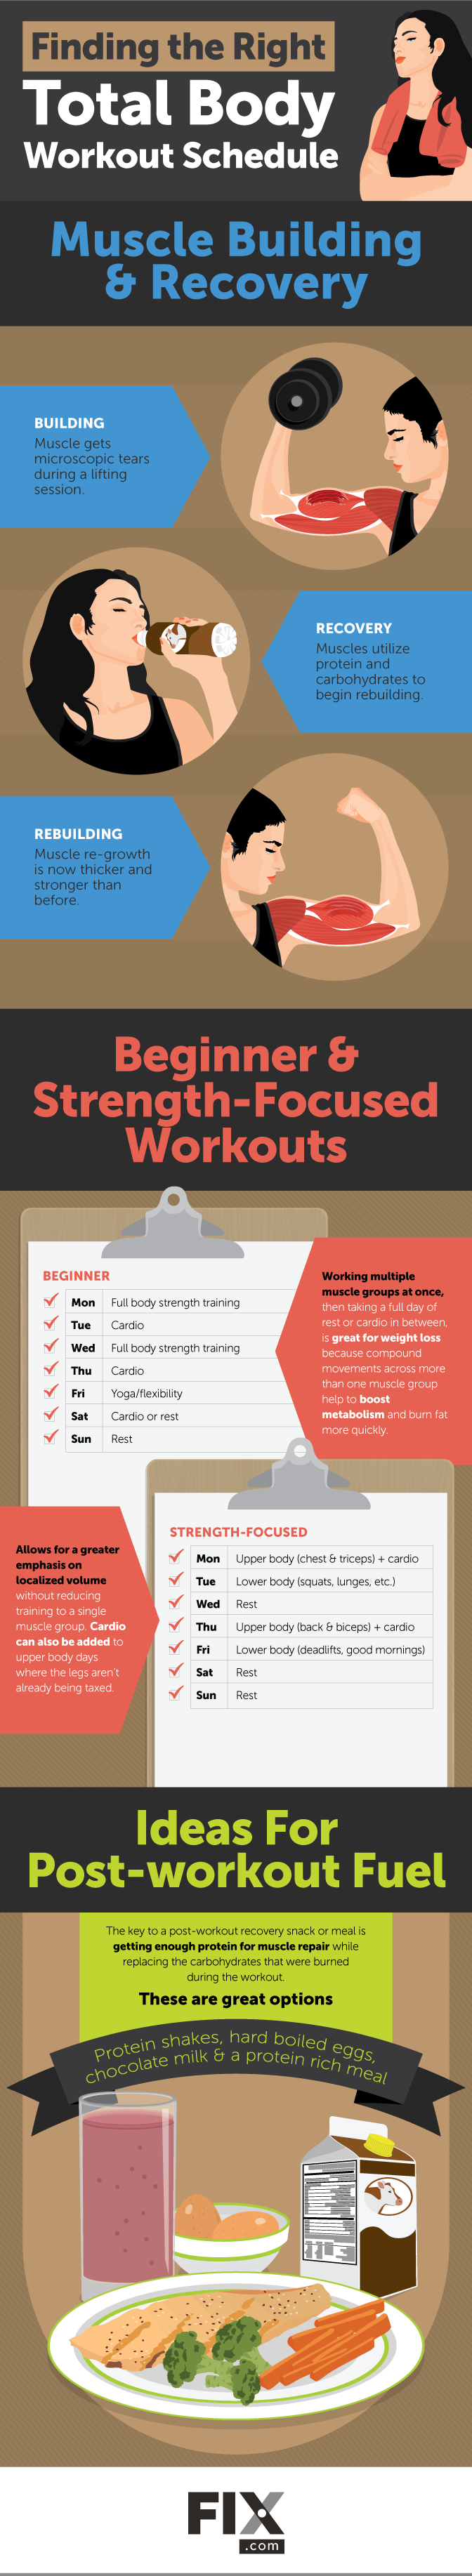 Schedule & Balance your Full Body Workout + Recovery [Infographic]   ecogreenlove